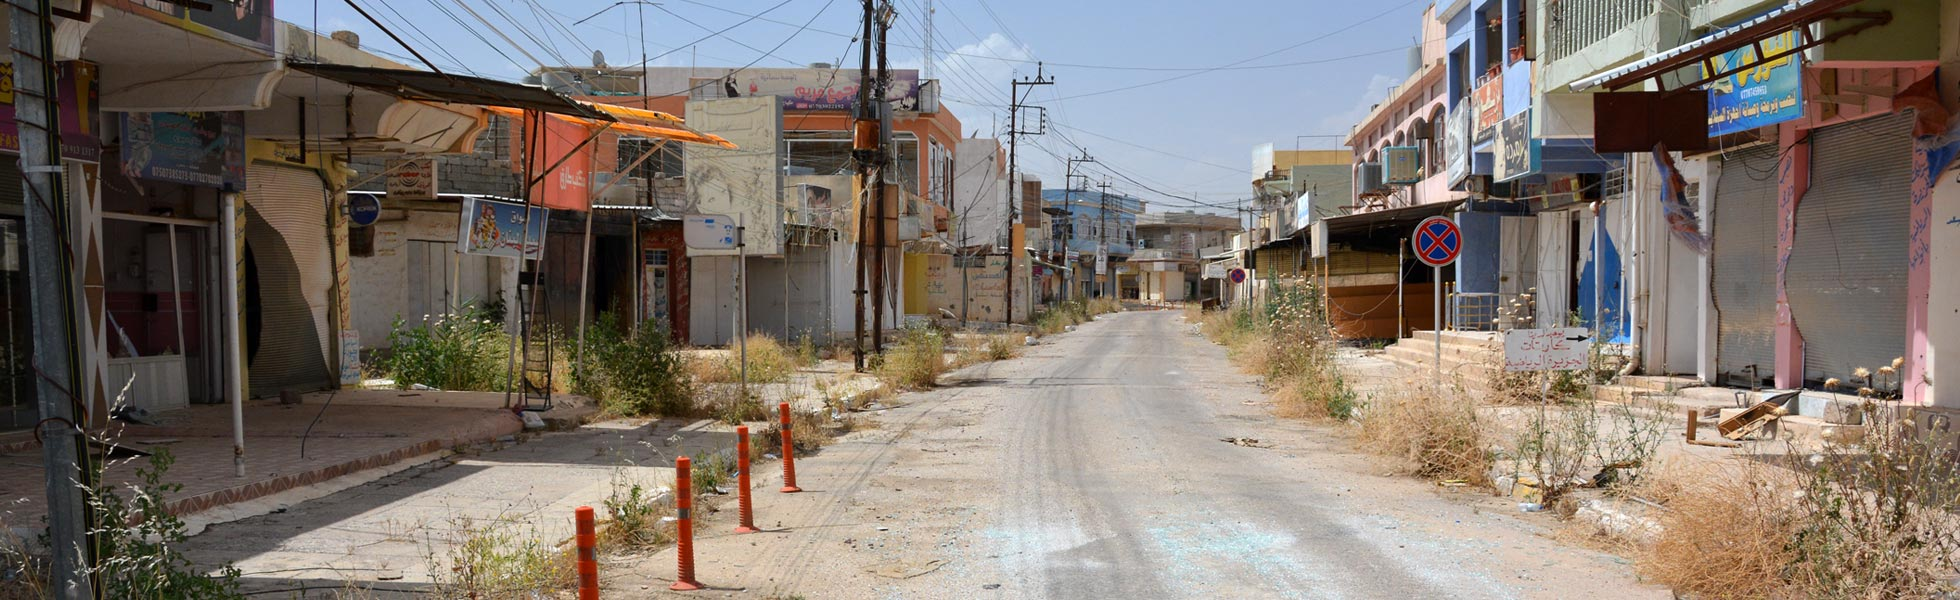 Telskuf in Iraq: ISIS left, destruction remains